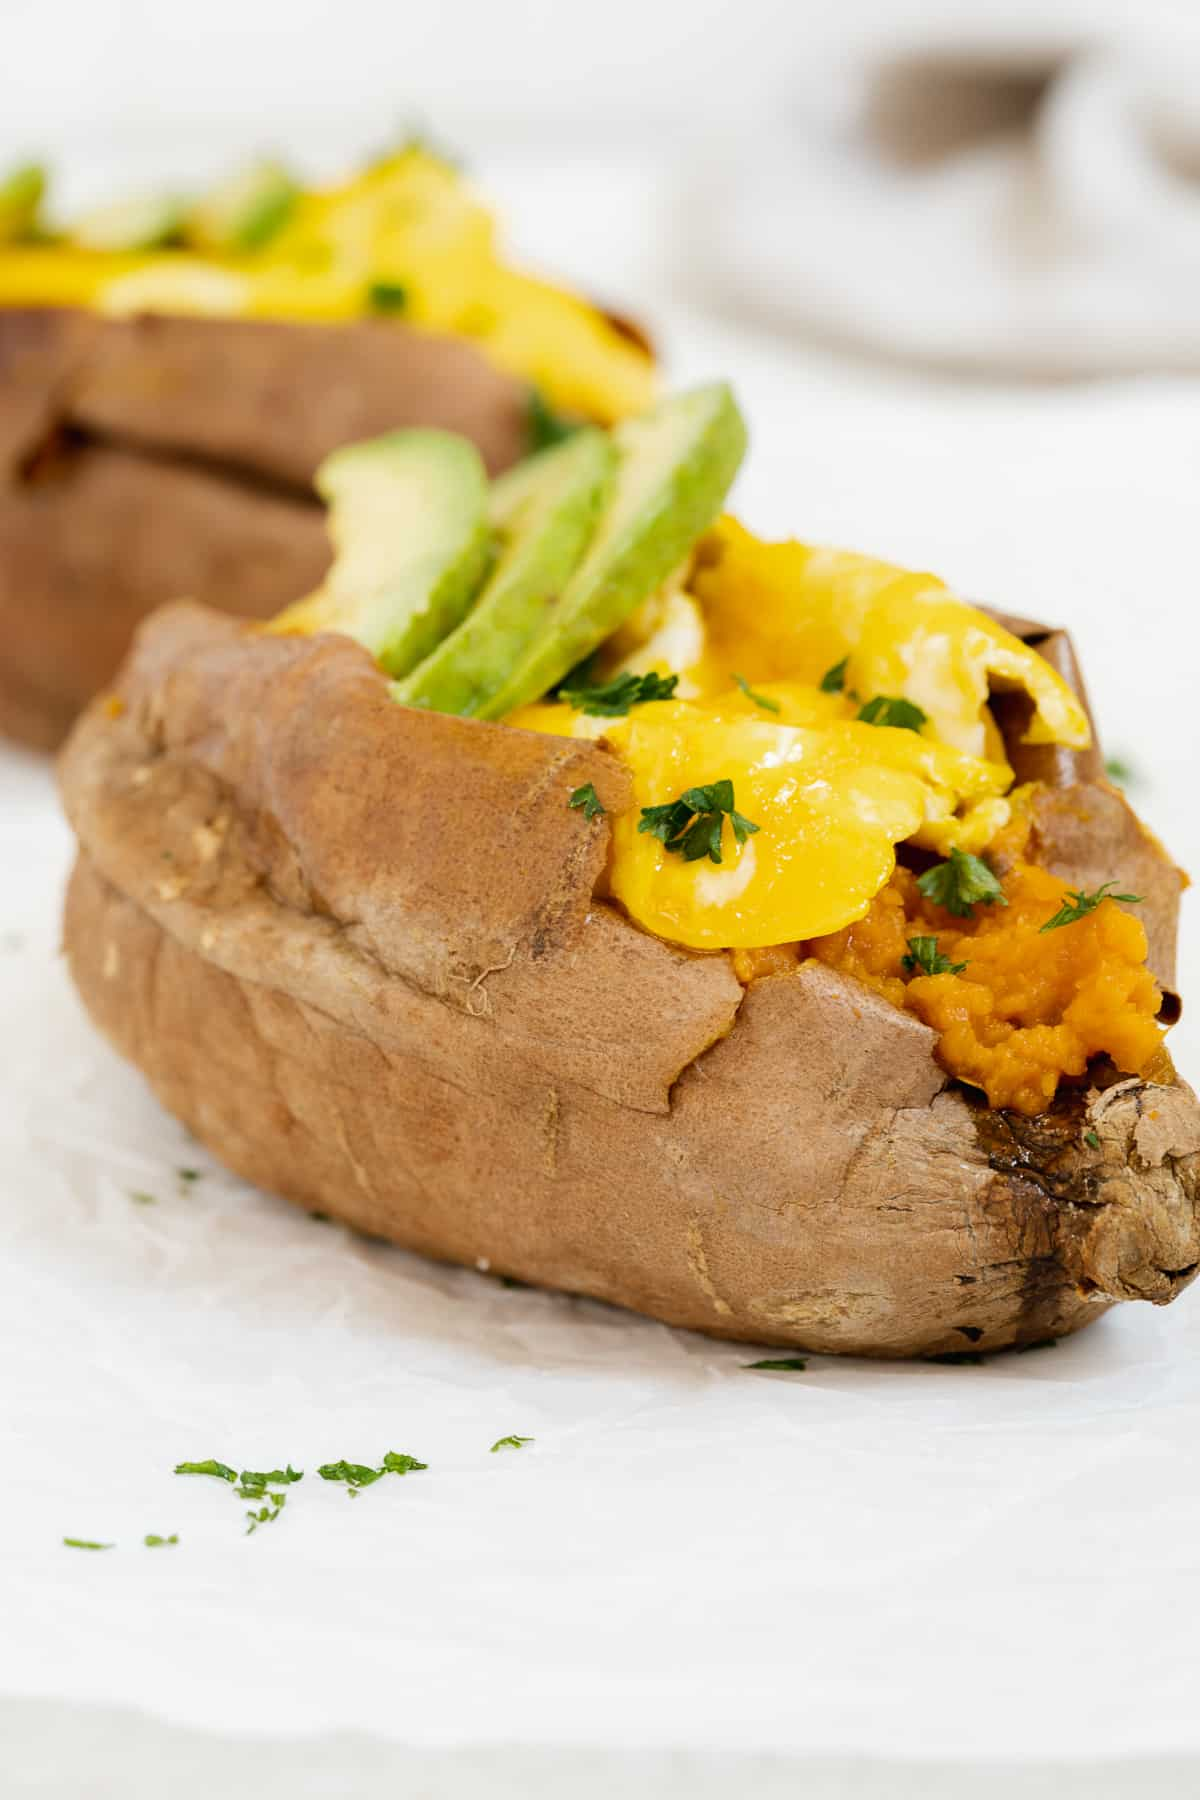 Sweet potato cup open with scrambled egg and herbs on a white surface.